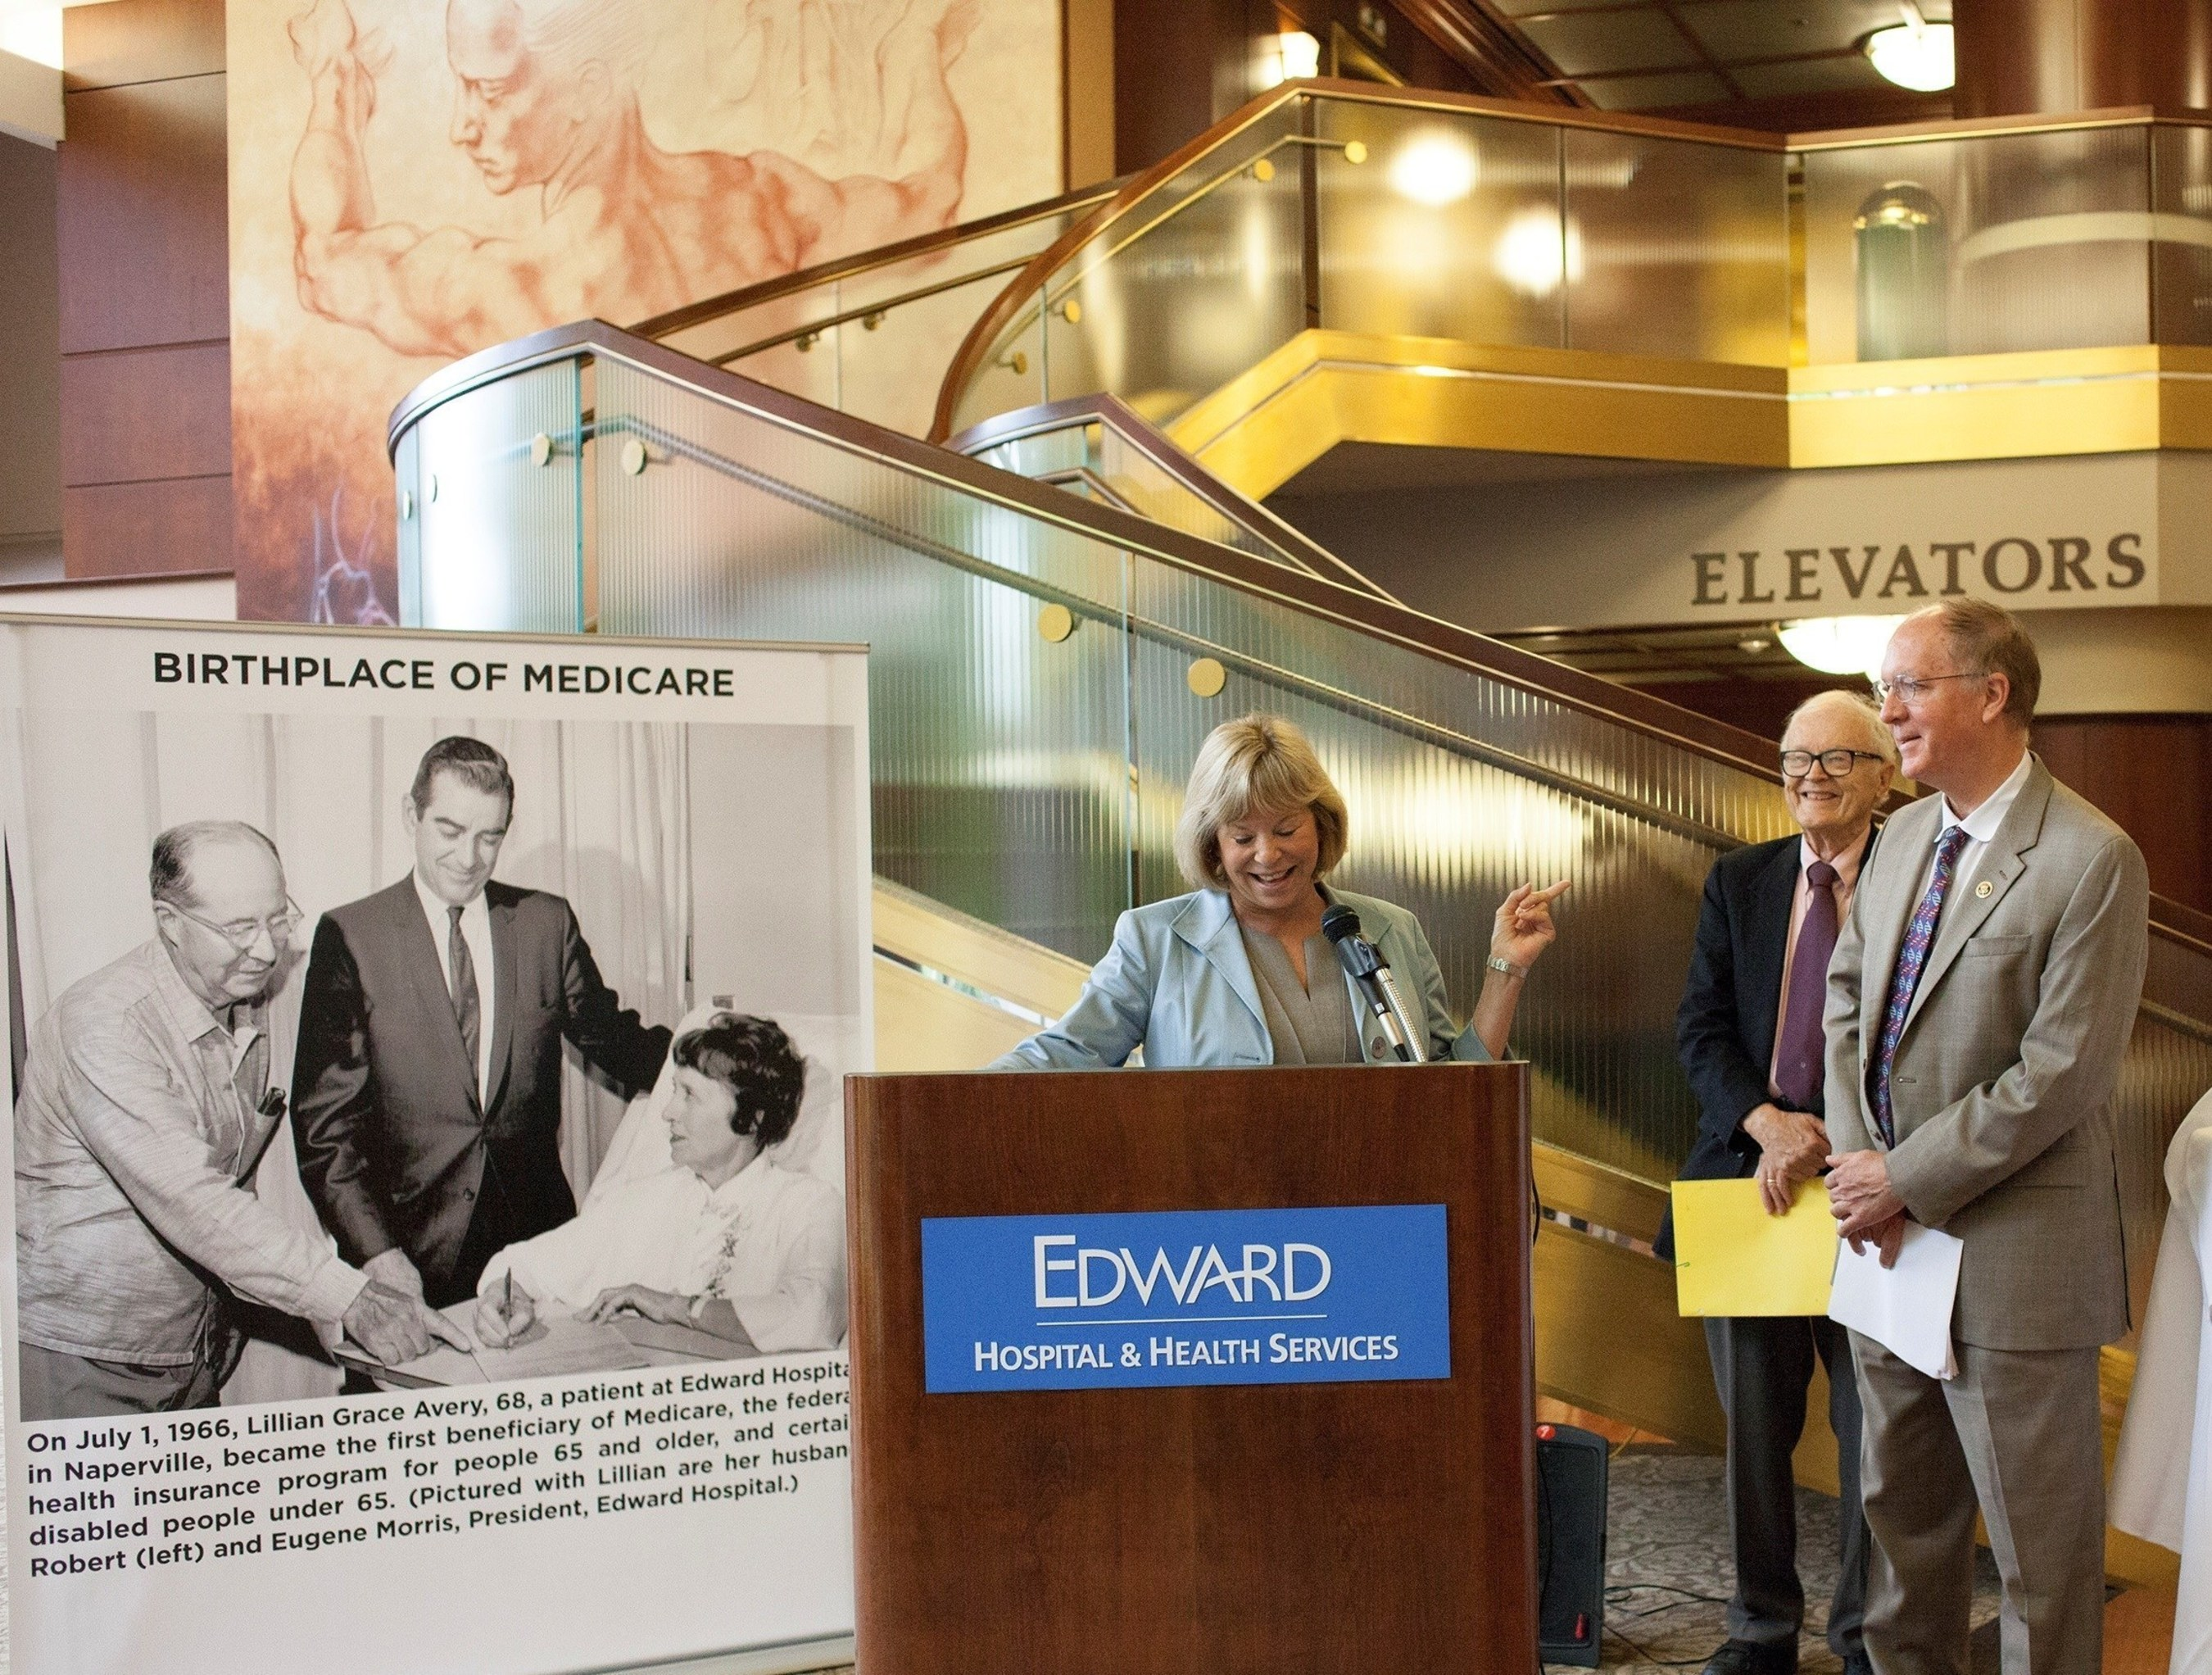 Pam Davis, System CEO, Edward-Elmhurst Health, speaks during a ceremony on July 20 at Edward Hospital in Naperville, Ill. to mark the 50th anniversary of Lillian Grace Avery becoming the nation's first Medicare beneficiary while a patient at Edward on July 1, 1966. With Davis are Rep. Bill Foster (D-Ill.) (far right) and Duane Carlson, who worked for the Blue Cross Association and was involved in Avery's selection as the first beneficiary.